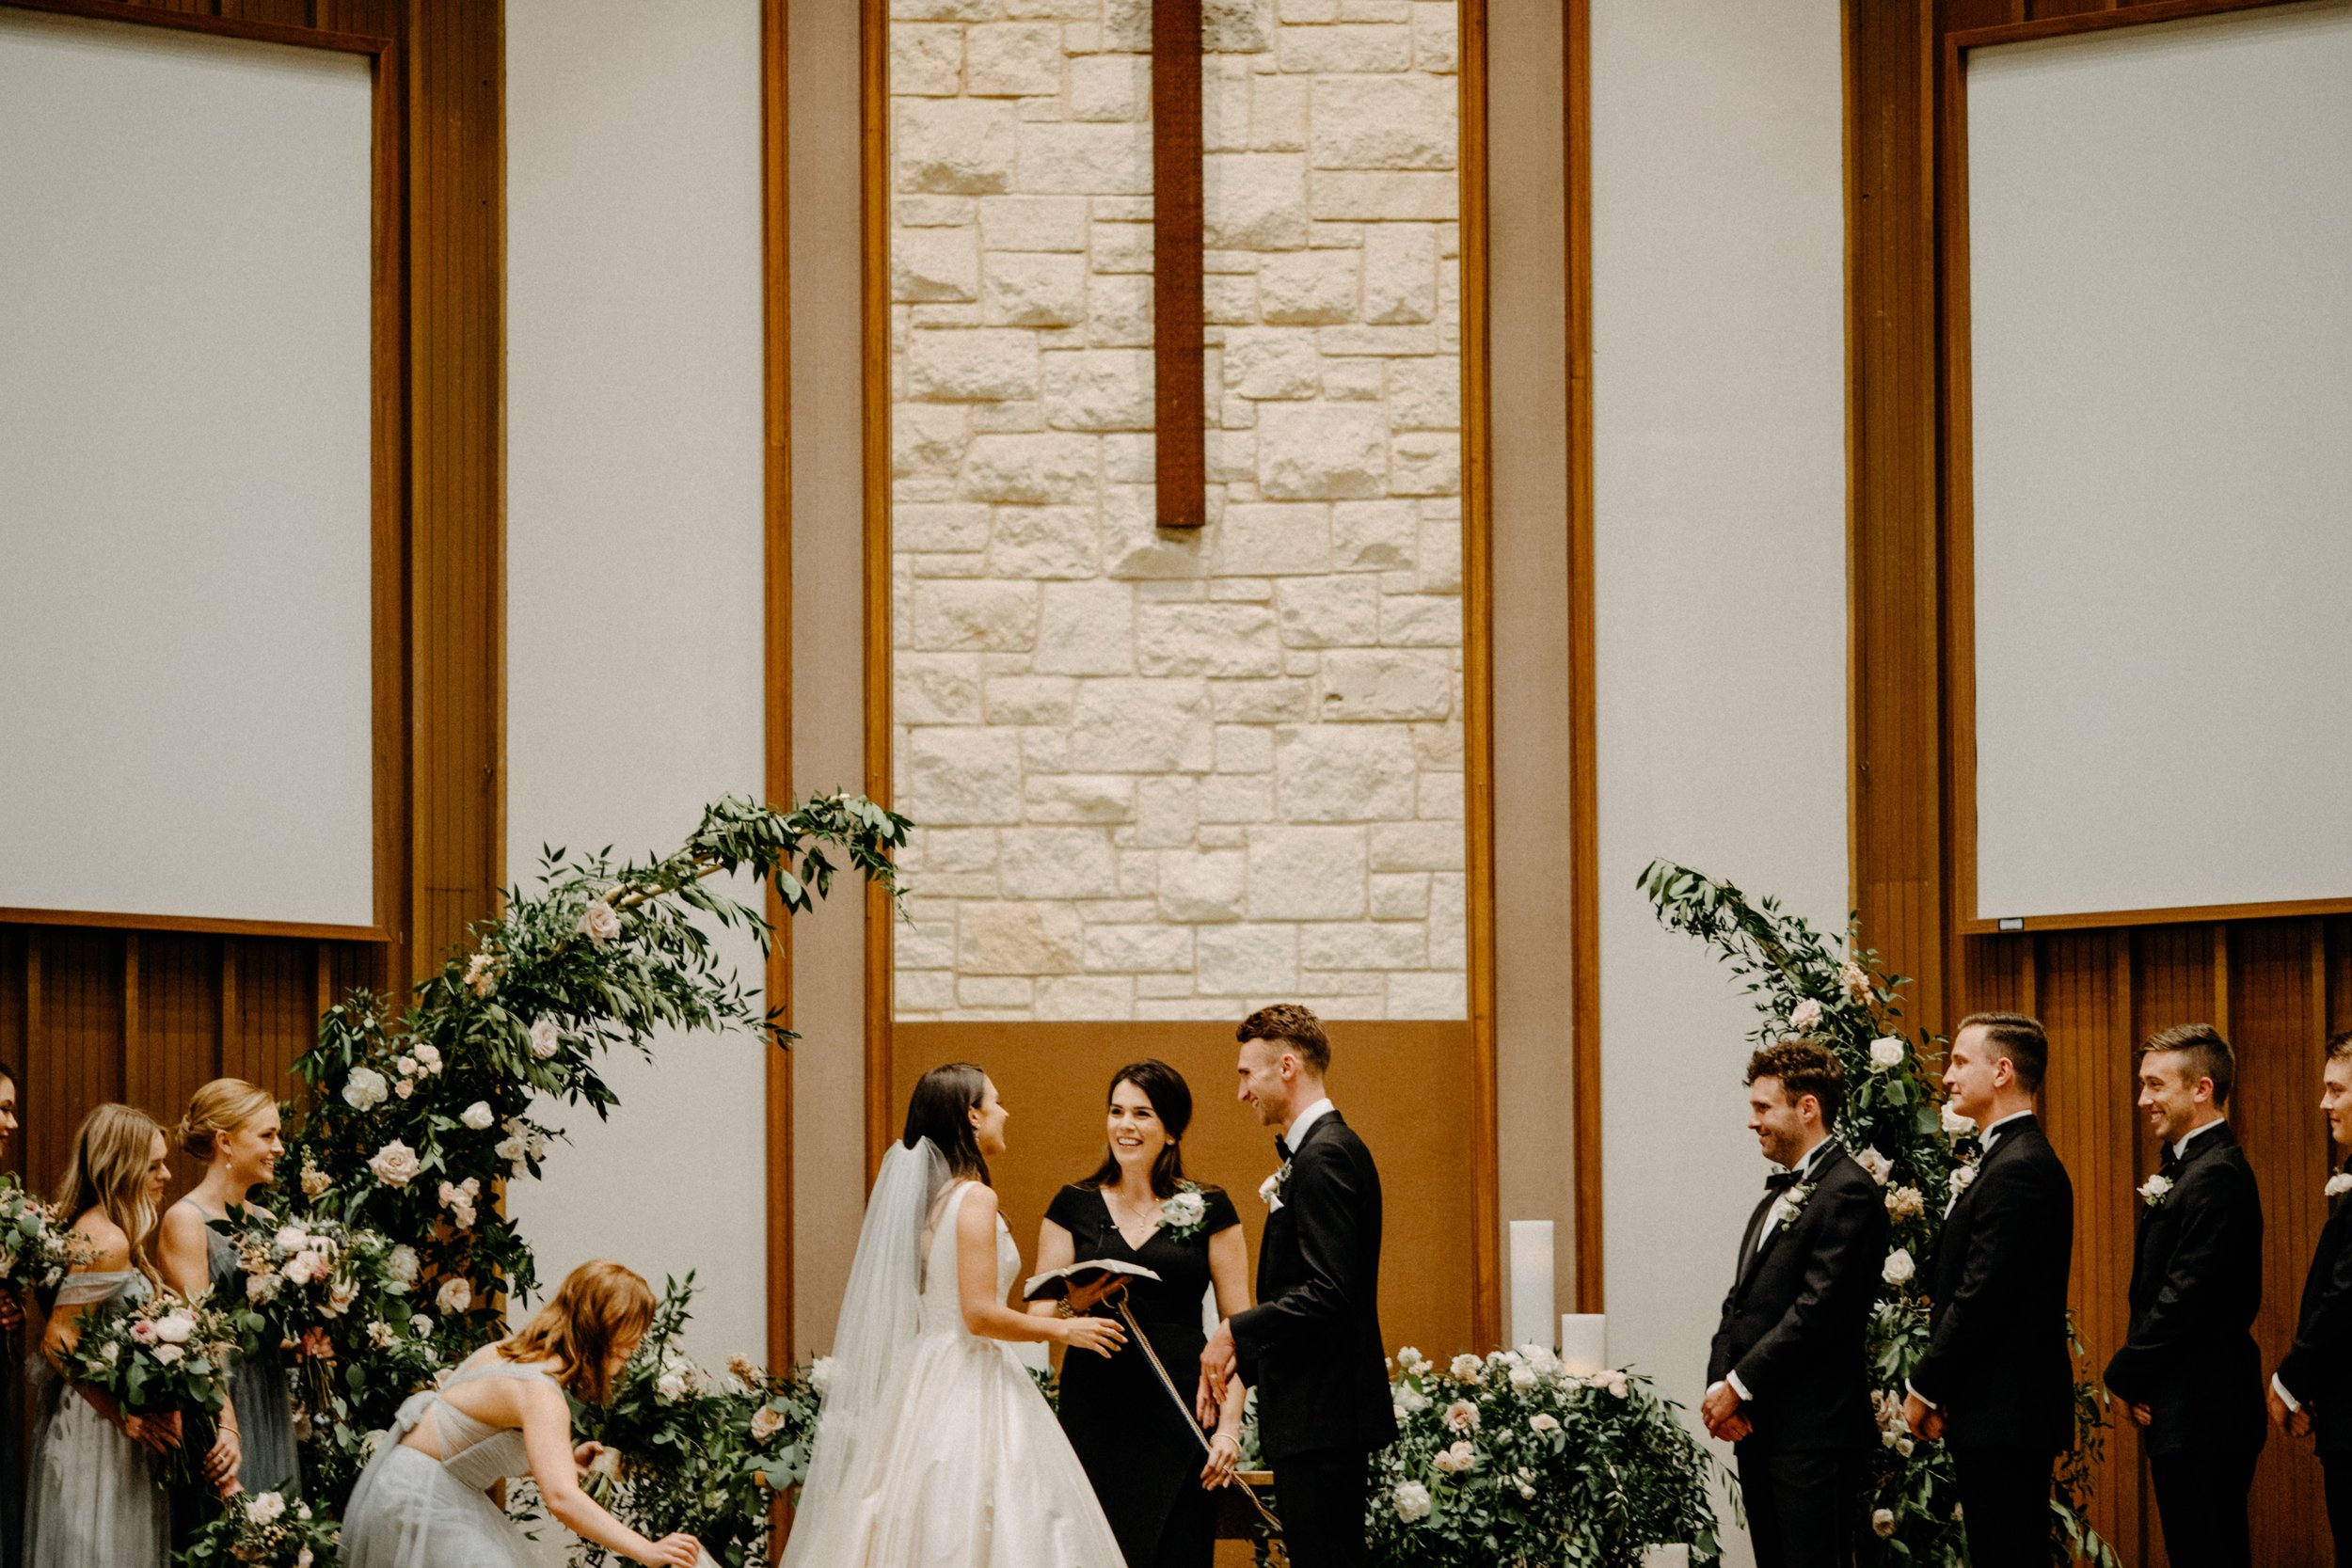 st-anthony-hotel-wedding-photography-10080san-antonio.JPG